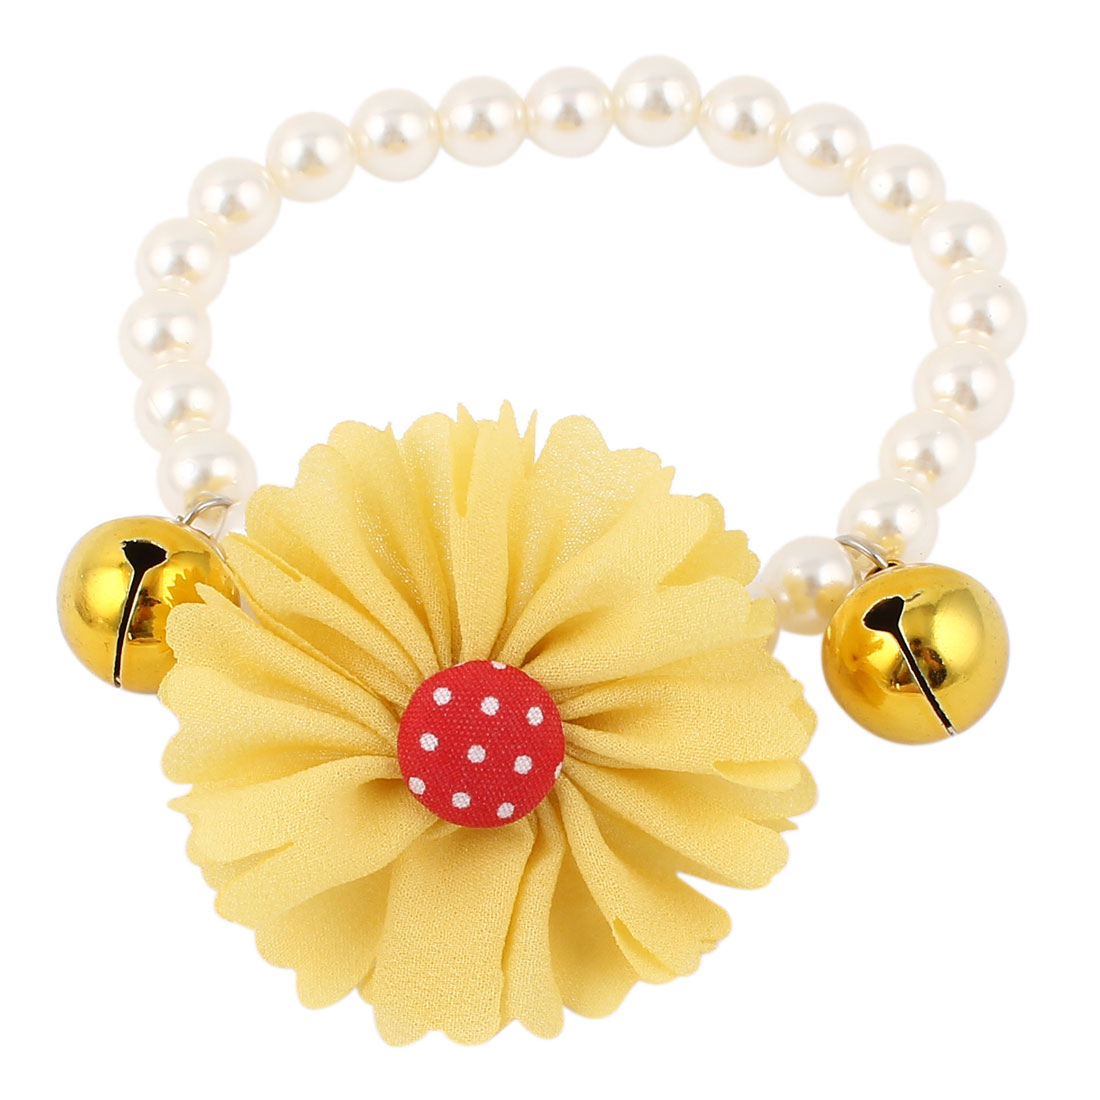 Metal Bell Pendant Flower Accent Pet Dog Plastic Beads Pearls Collar Necklace White Yellow S